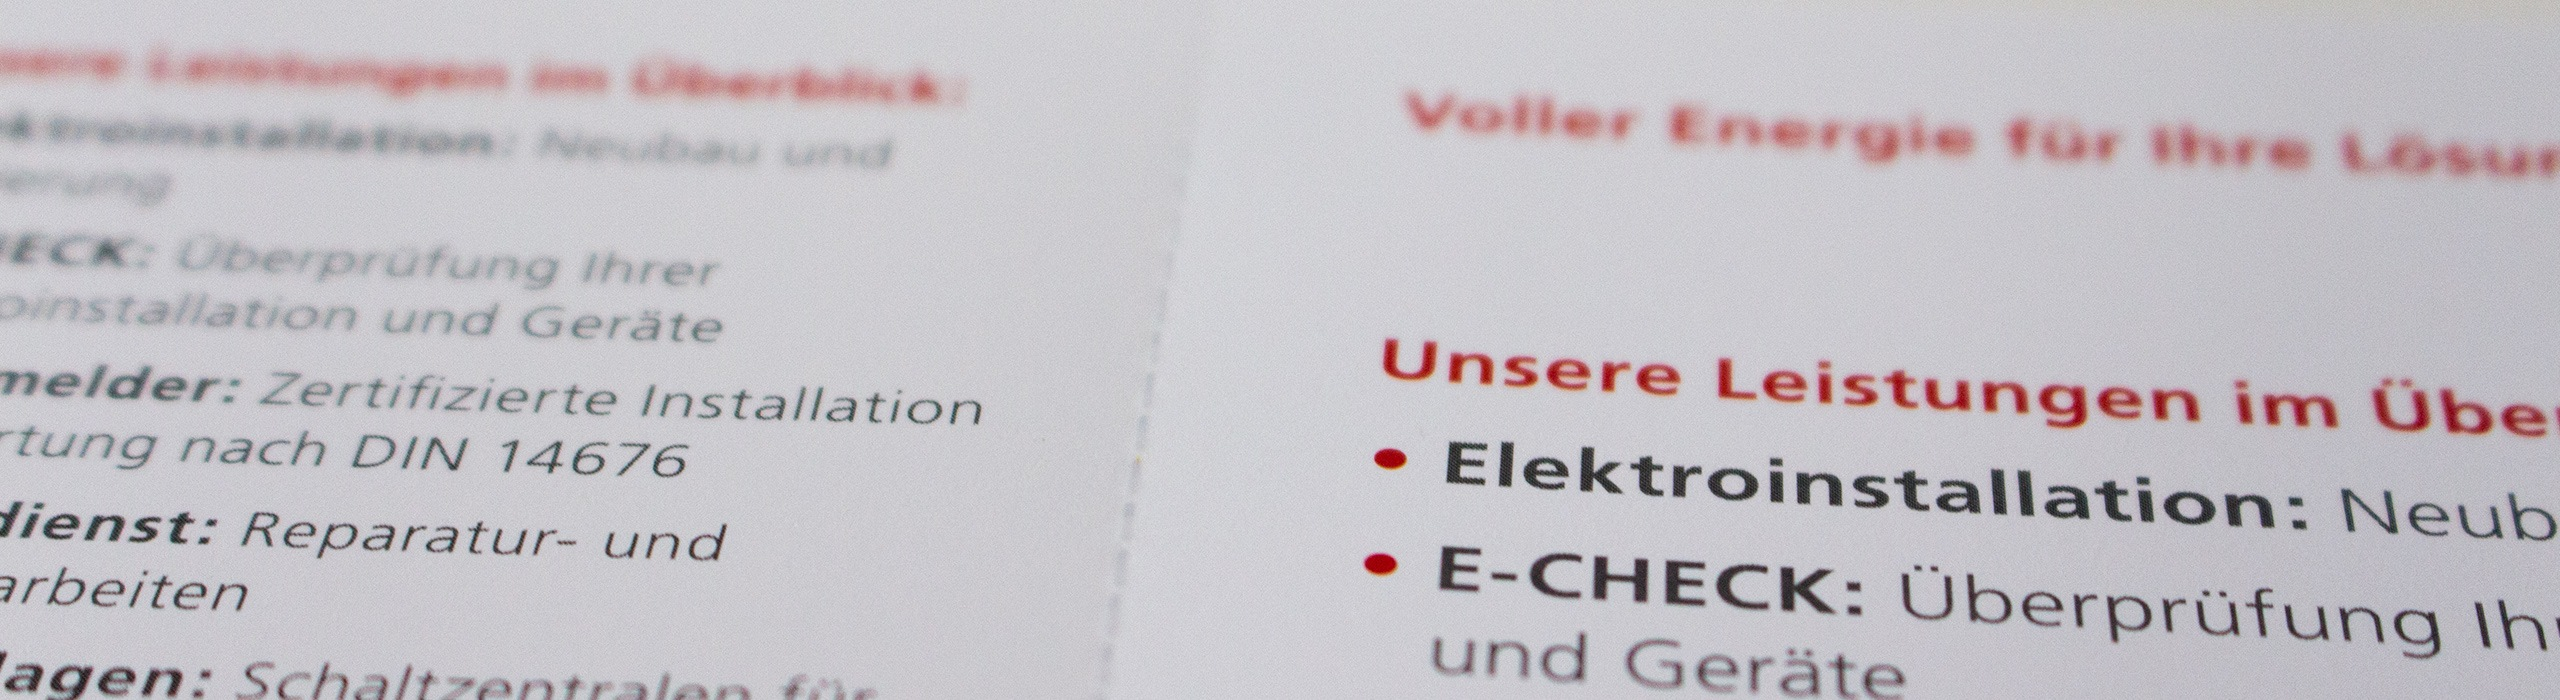 Flyer mit Perforation Detail hinten